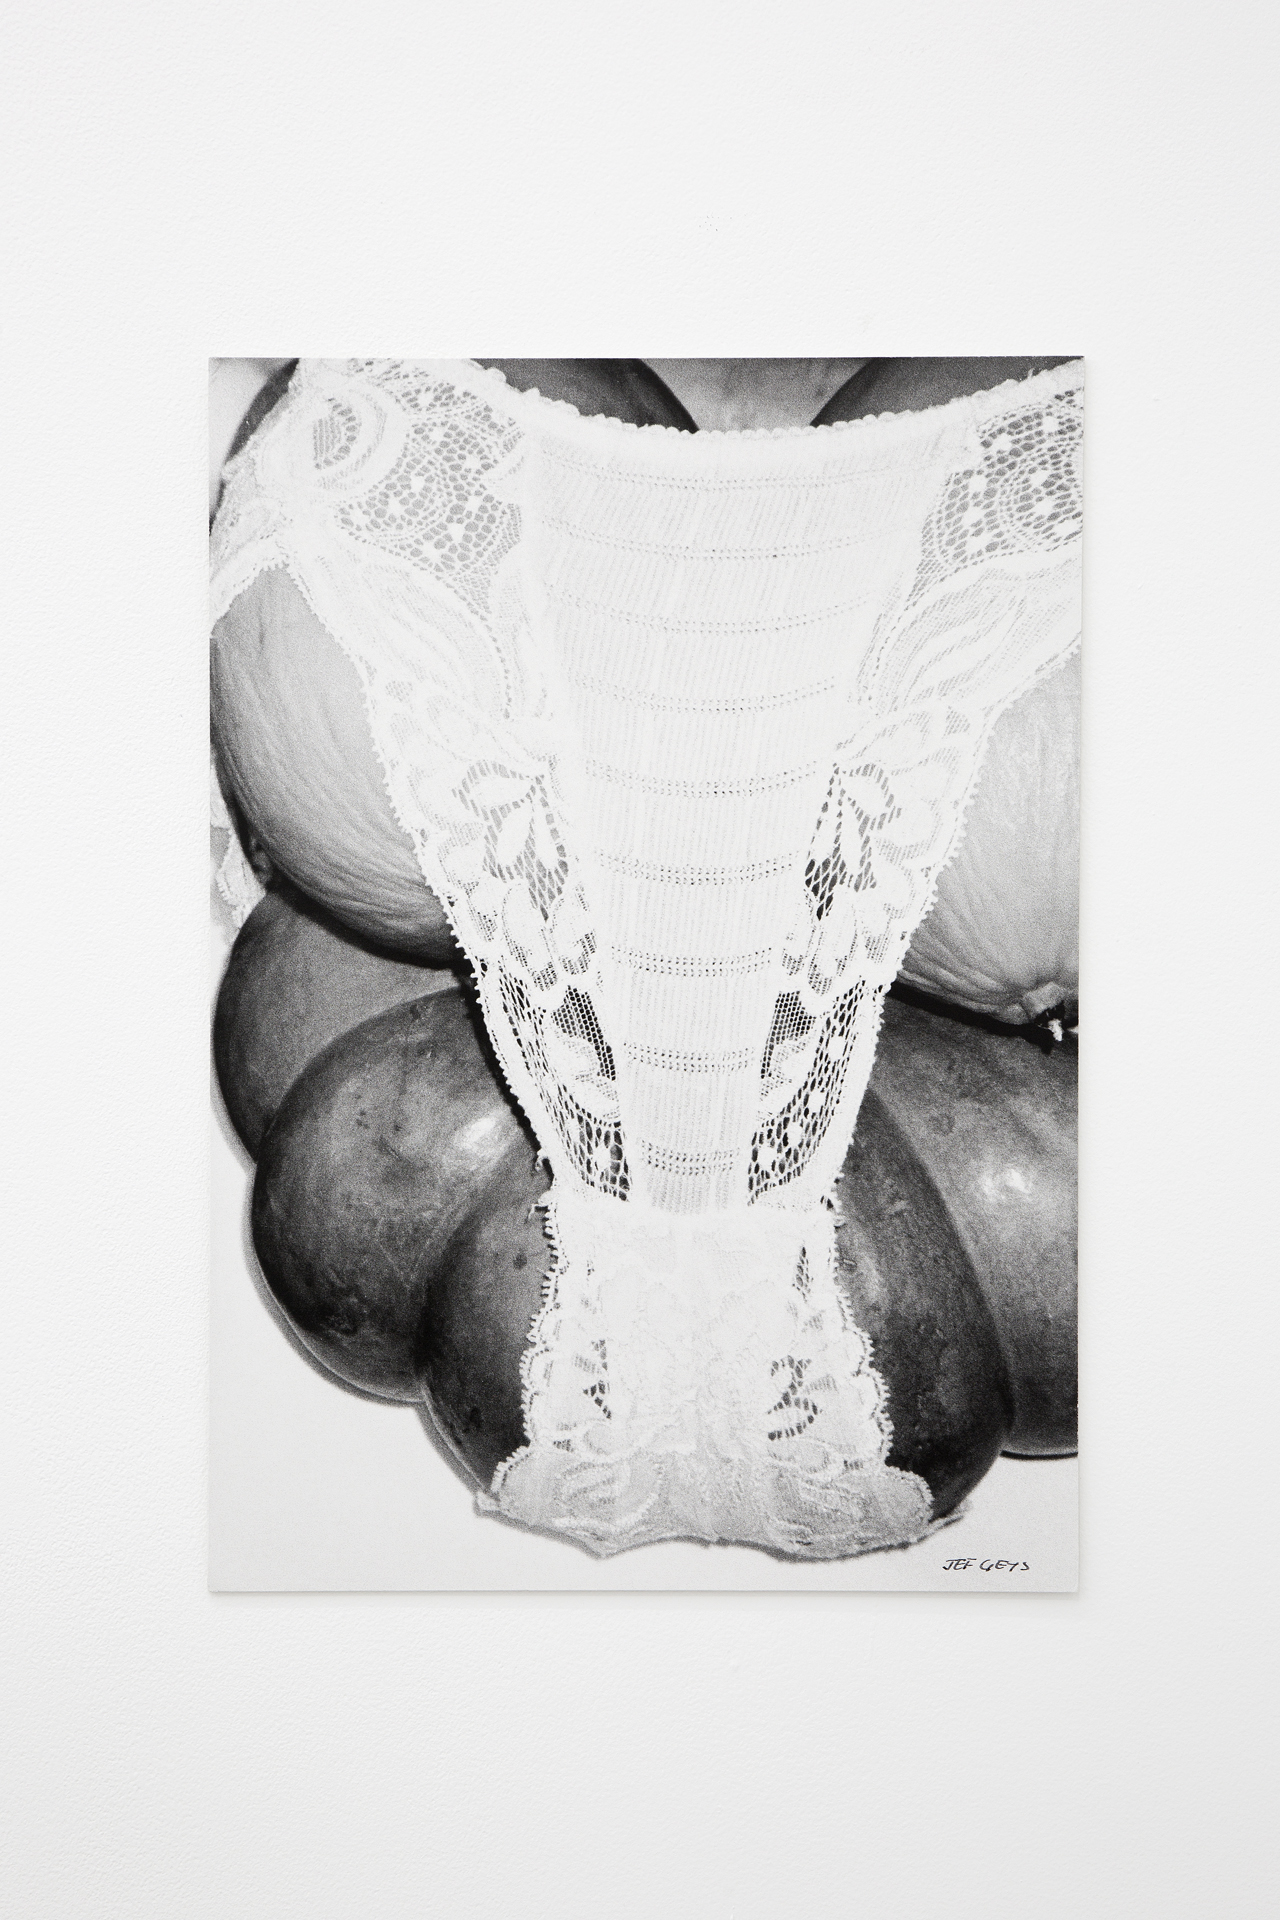 Jef Geys, Fruitlingerie, 1985. Black and White Print, A3 size.